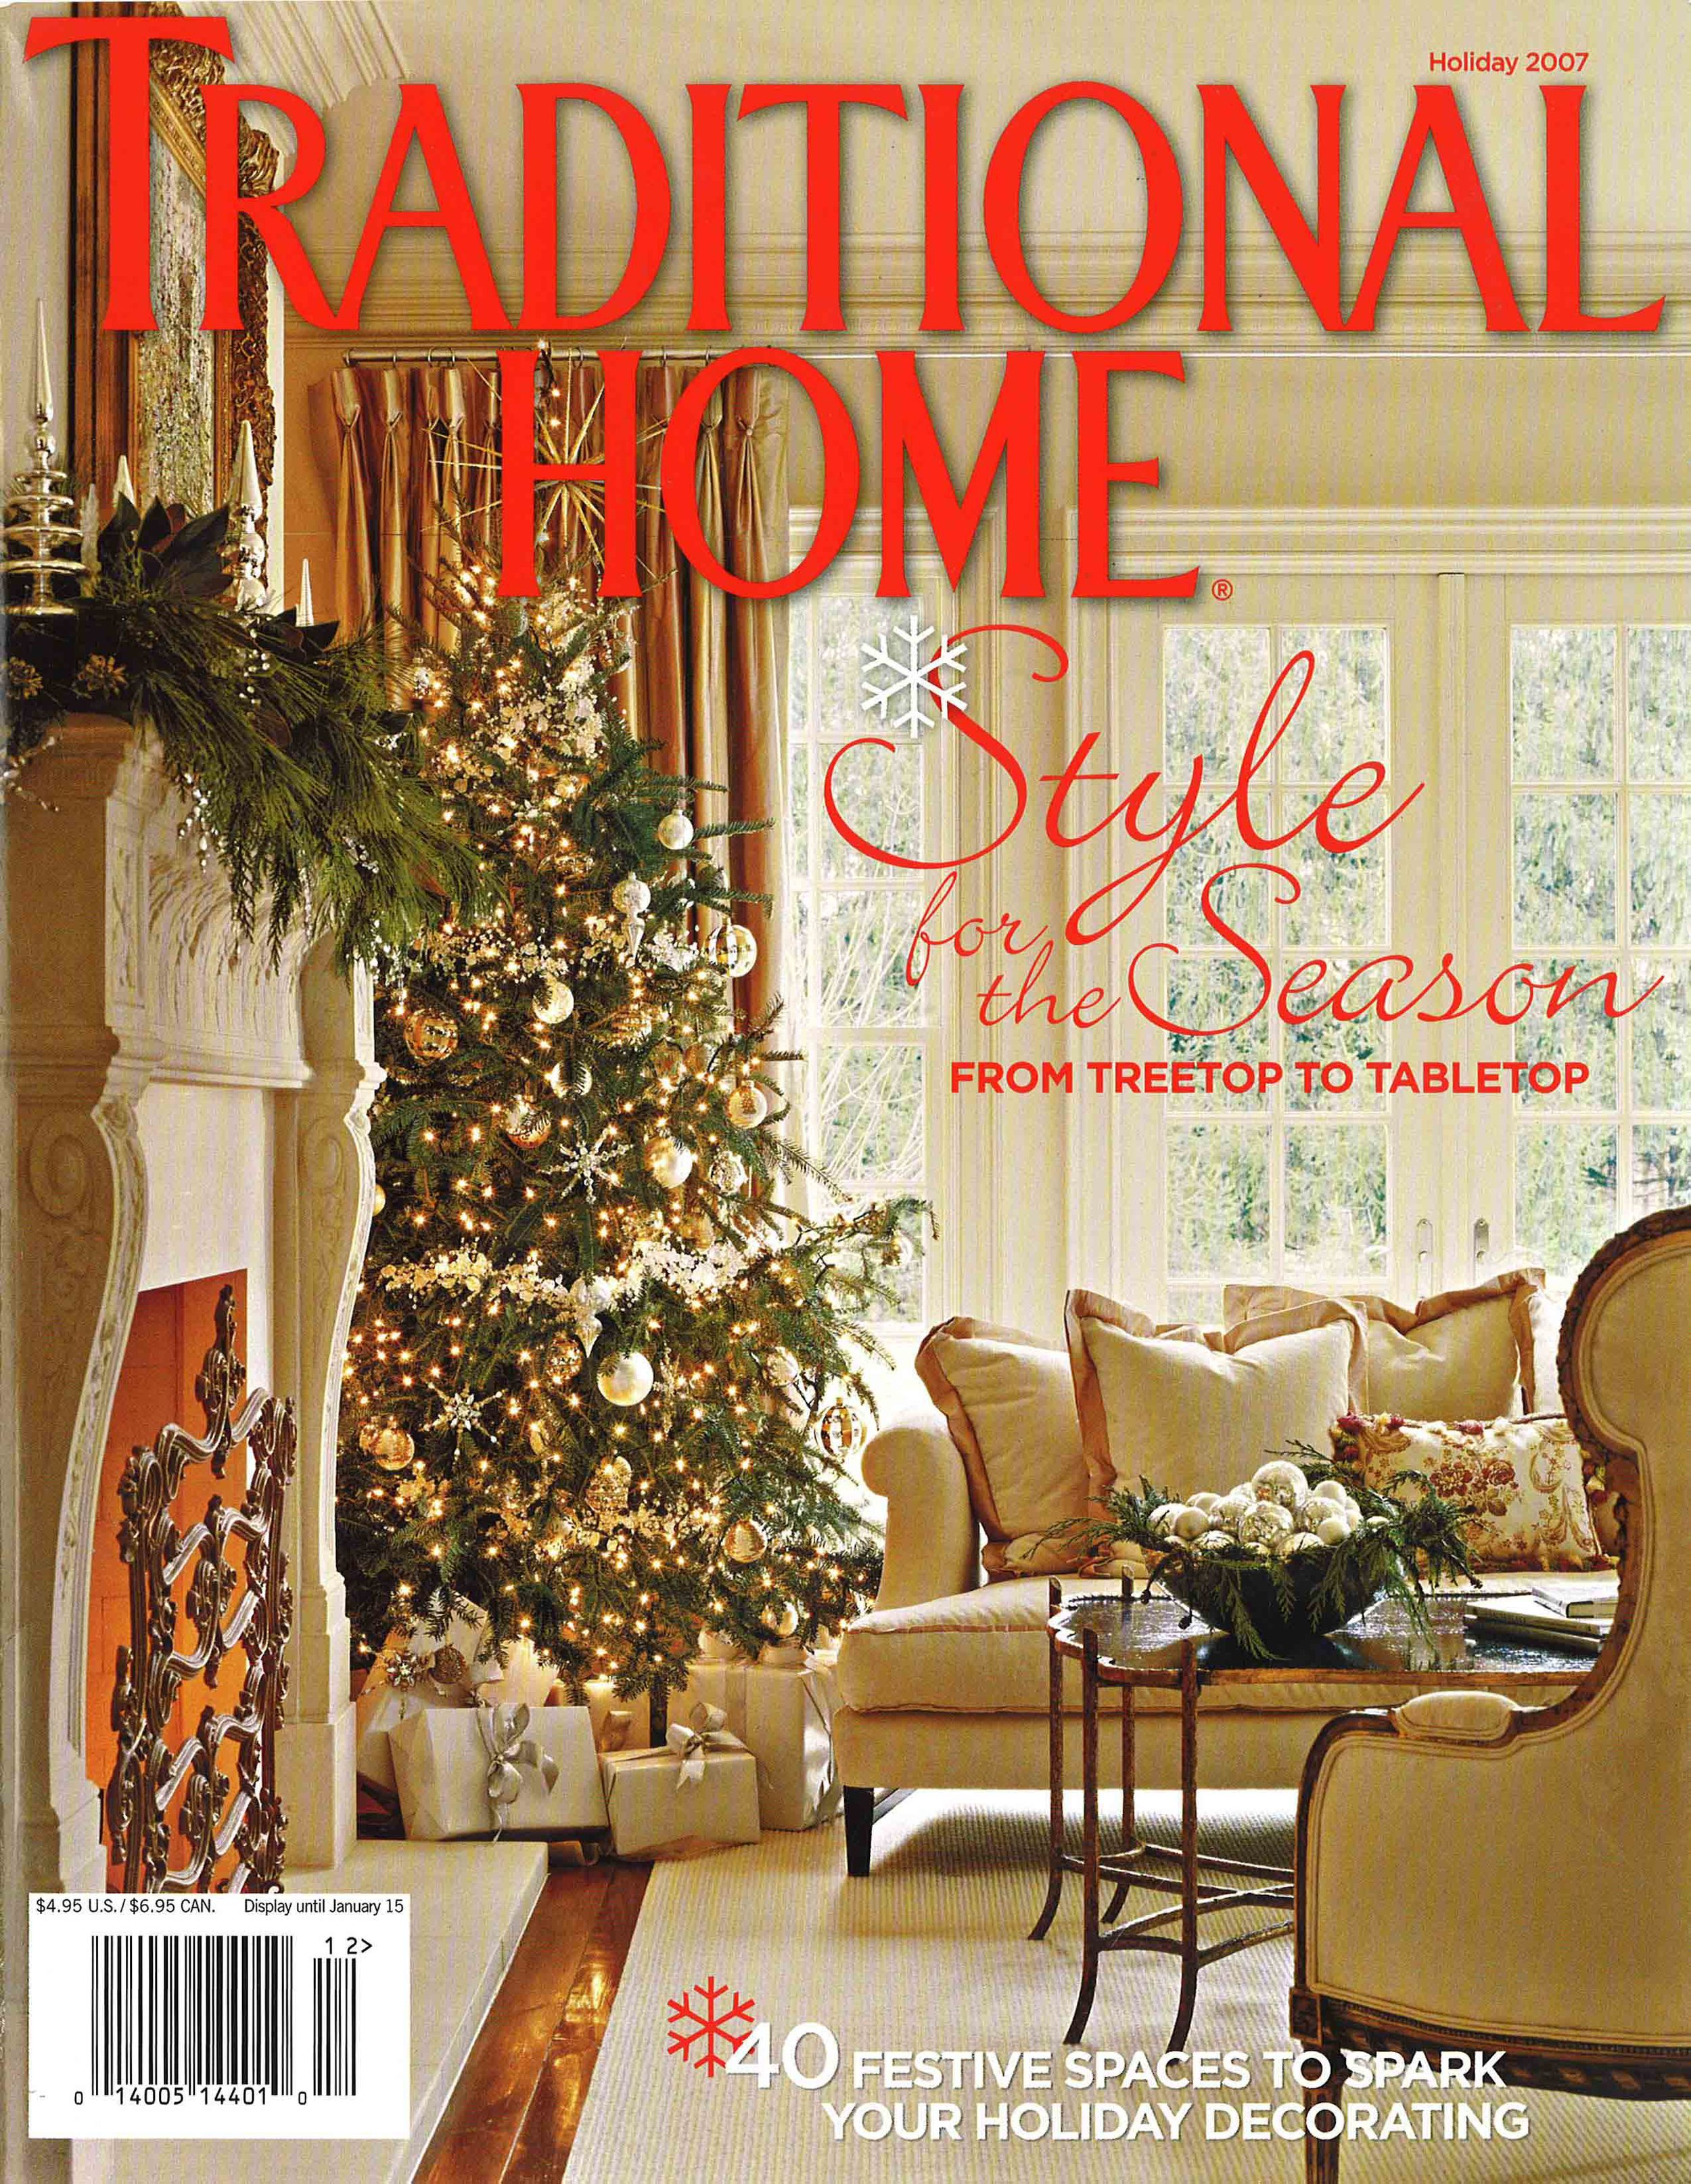 TH holiday07 cover 72.jpg